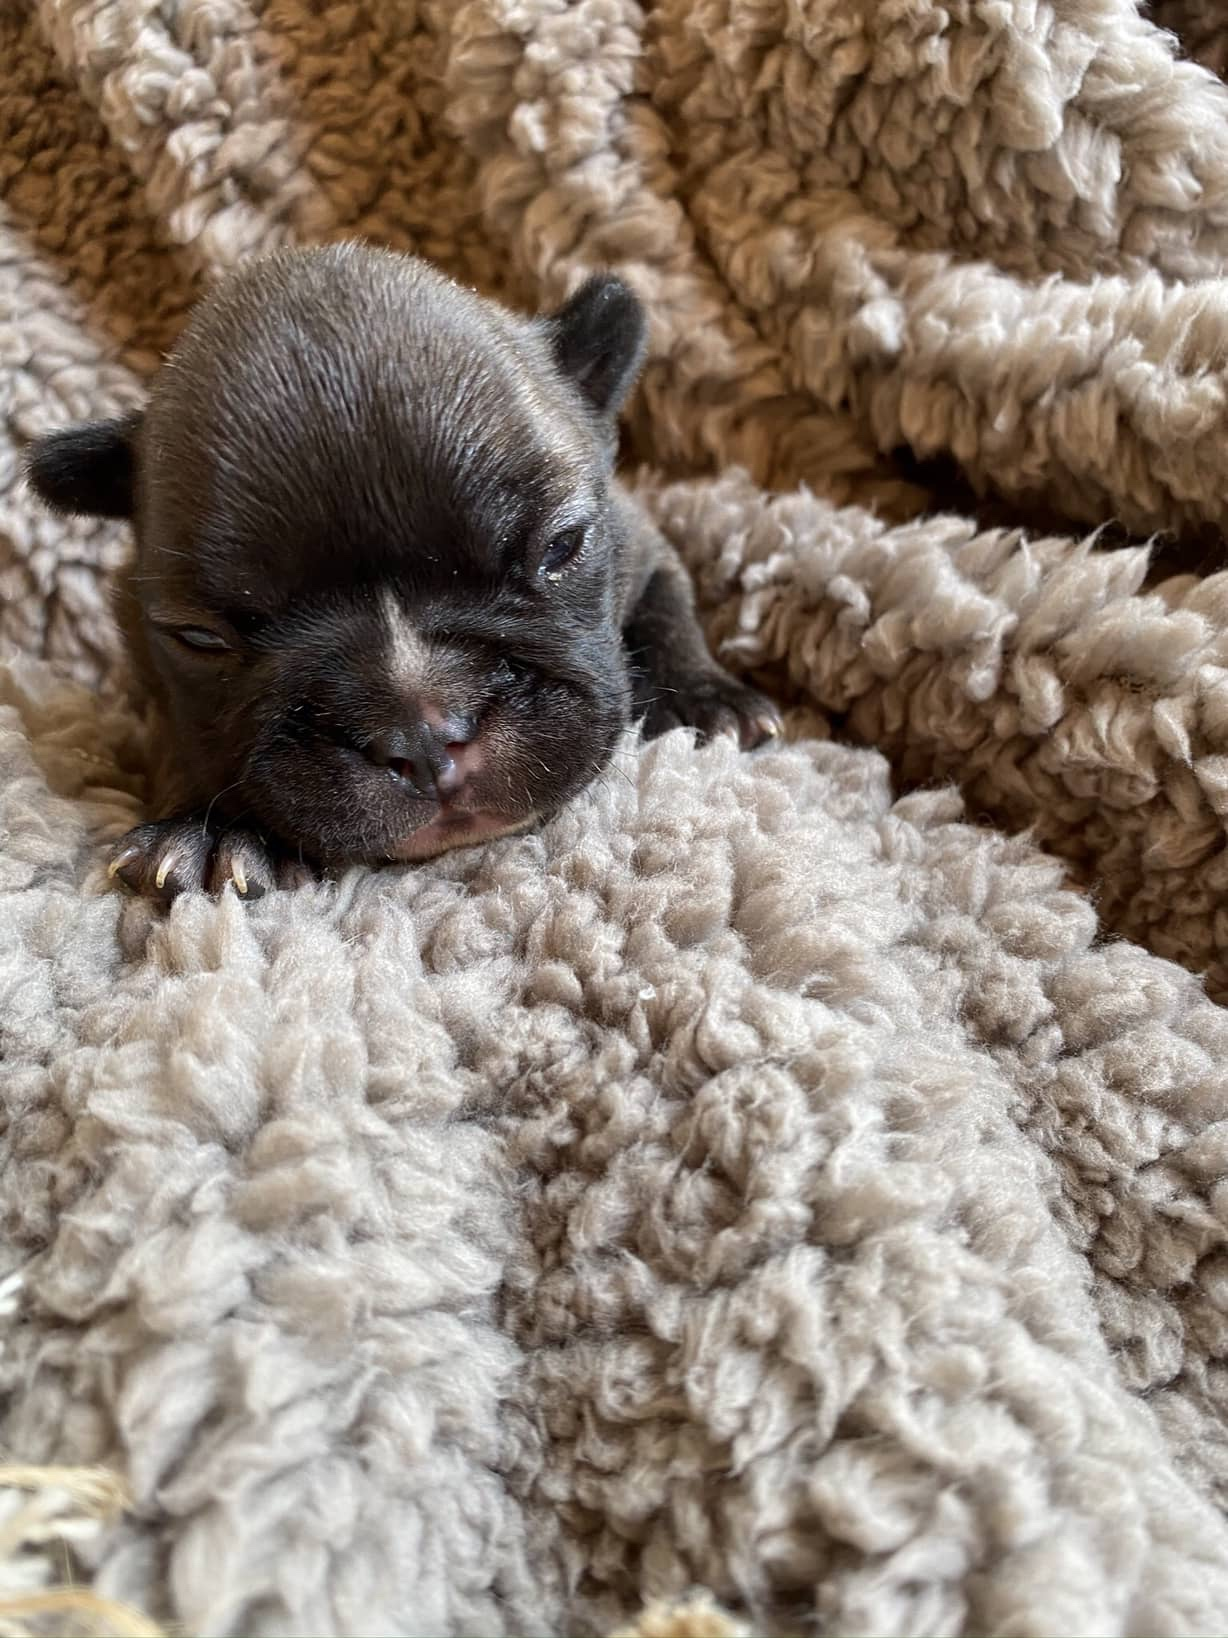 Upcoming Champion Sired Standard French Bulldog Litter: August 6, 2020